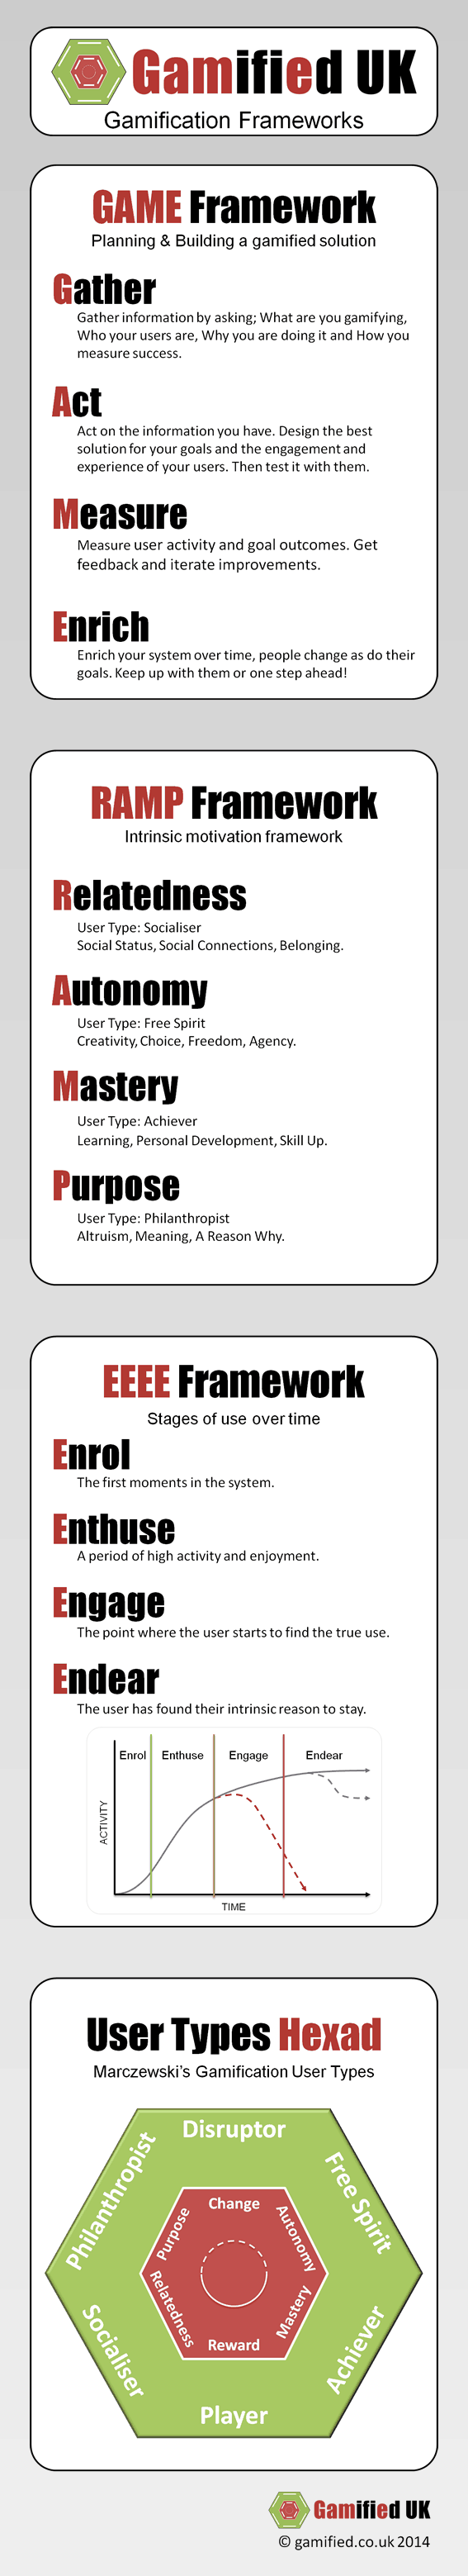 A Simple Gamification Framework / Cheat Sheet